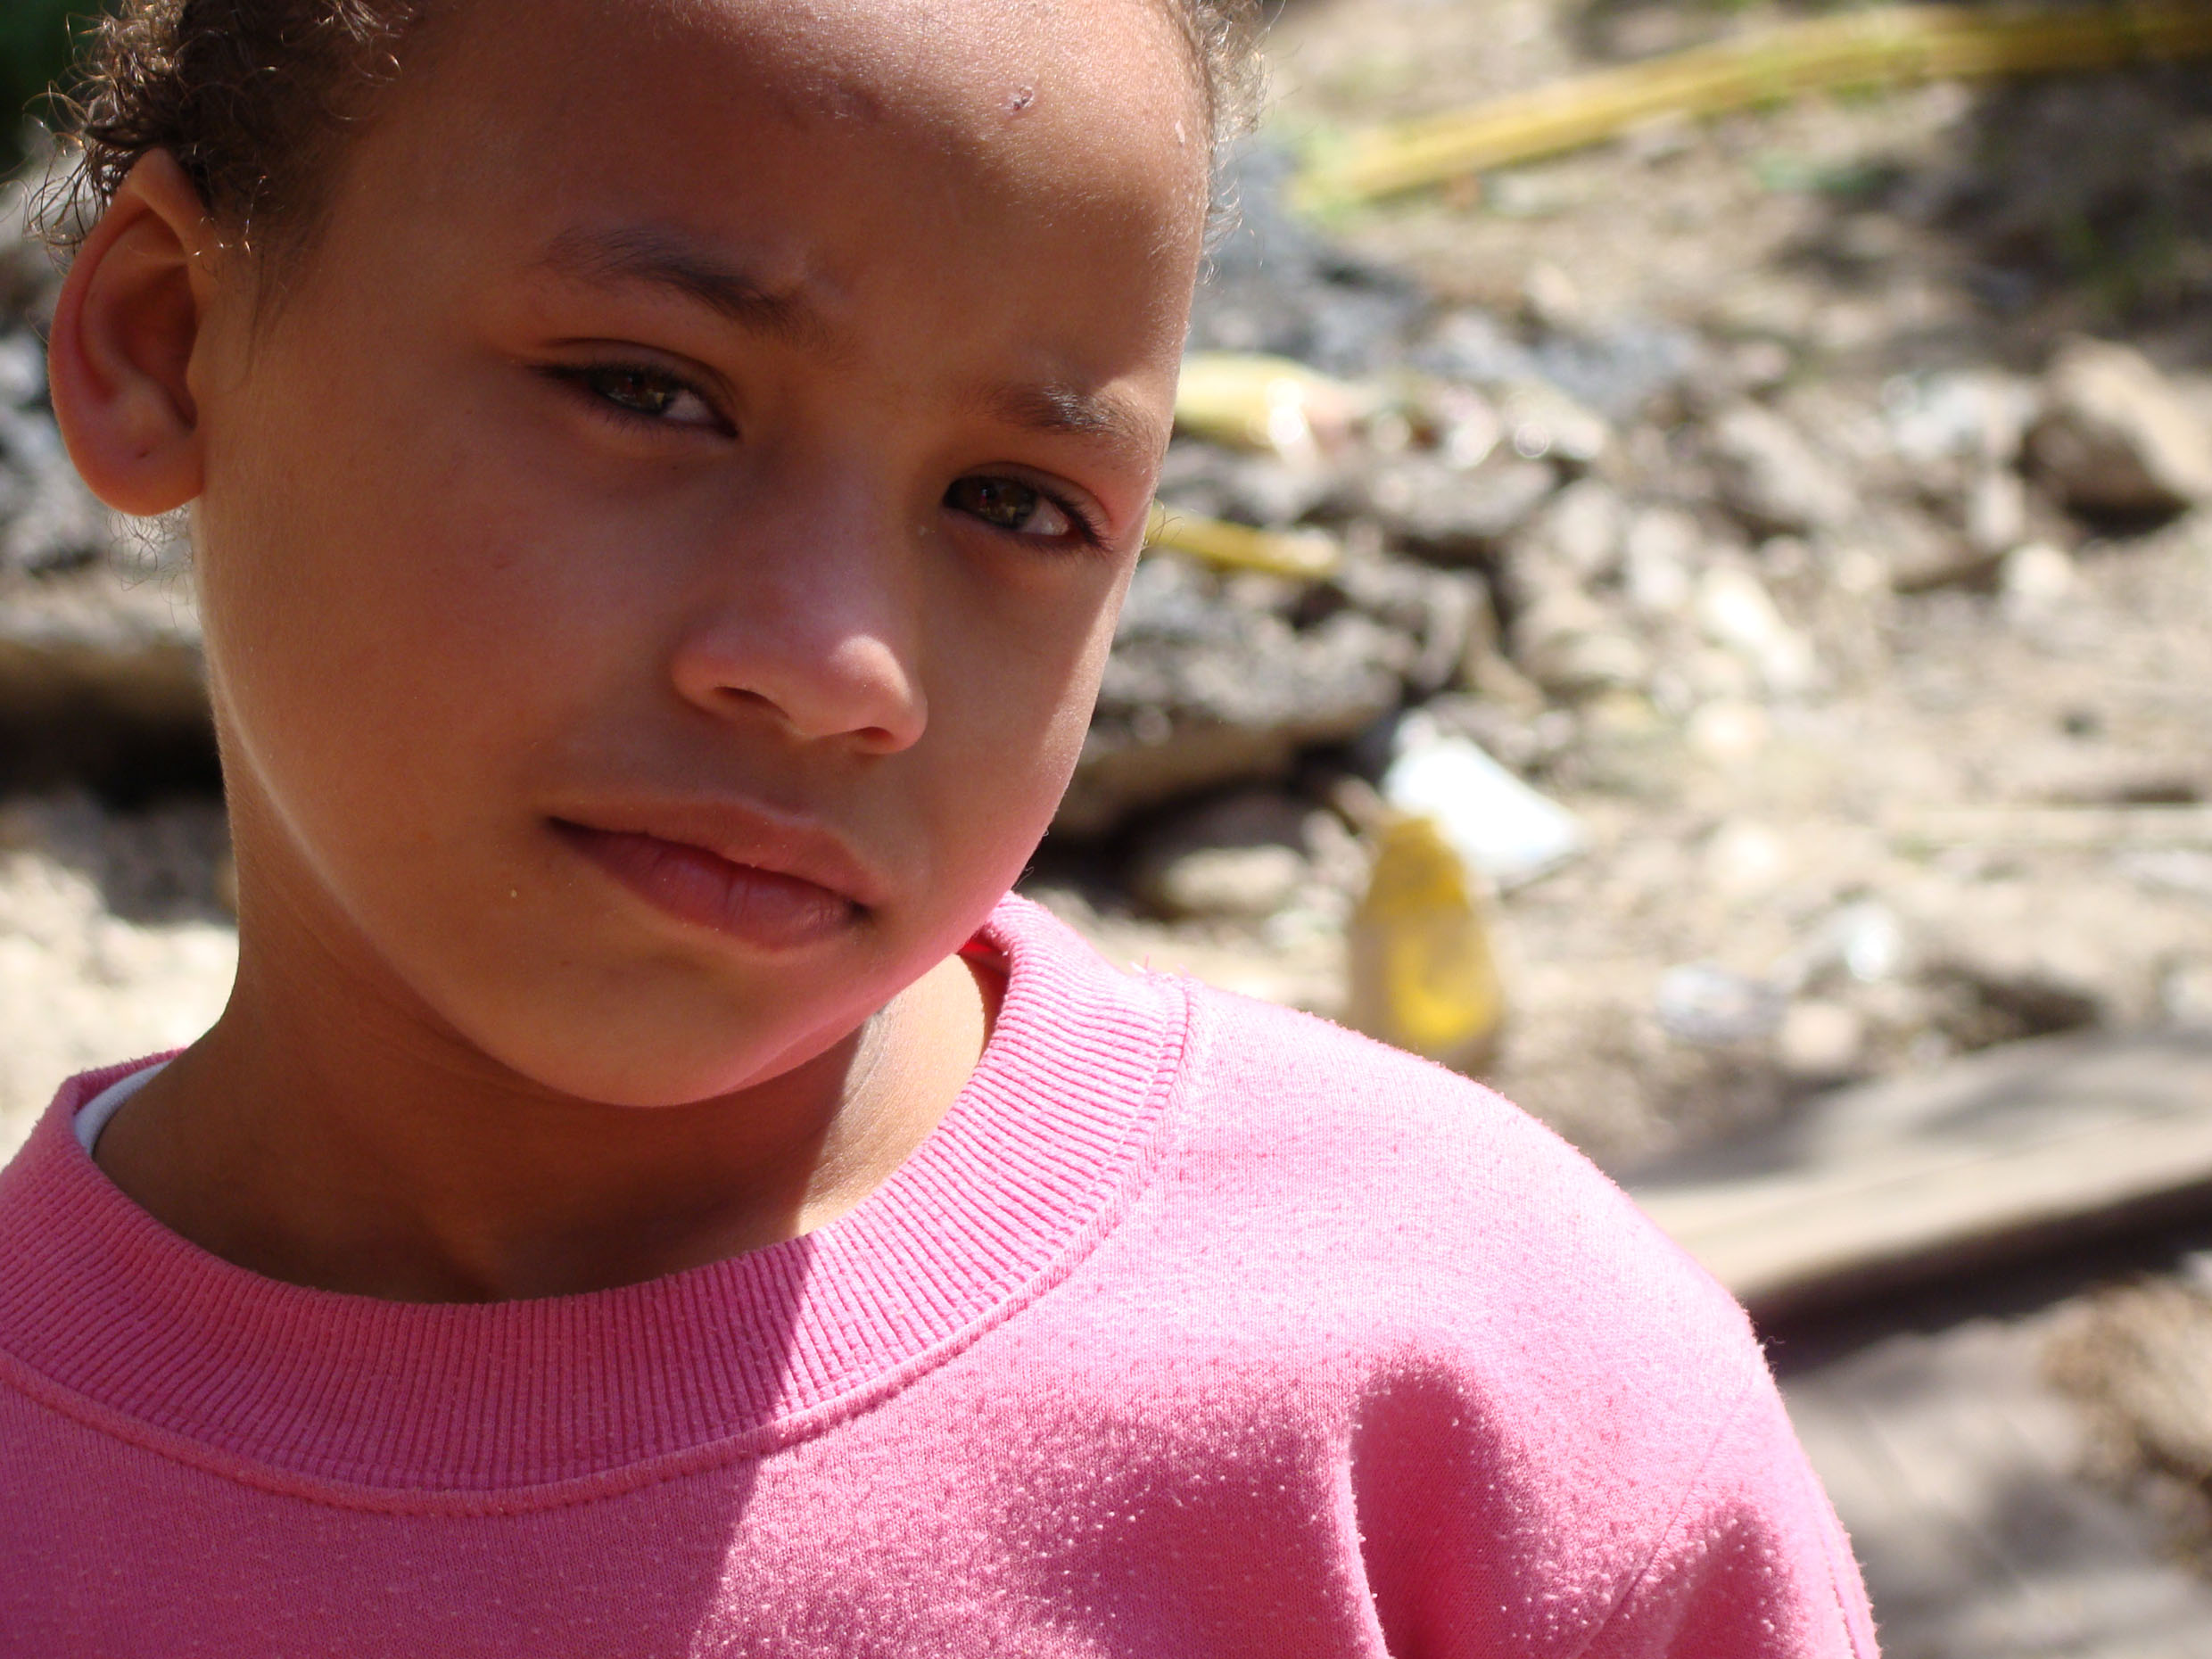 I have the right to childhood - Mariam (15)